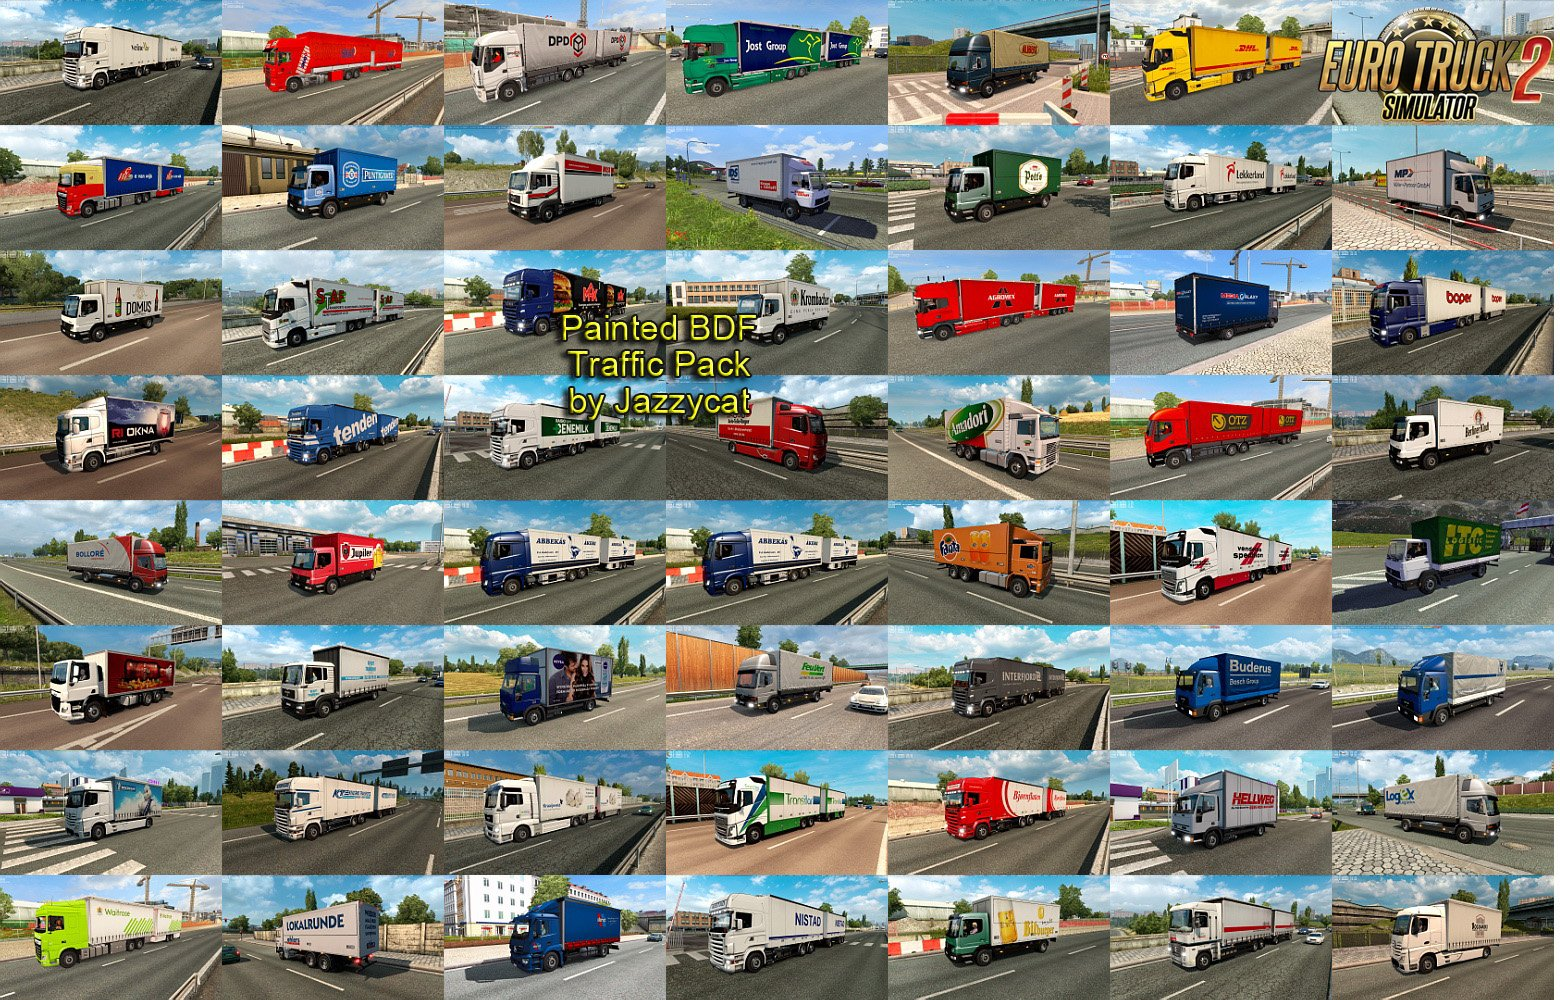 Painted BDF Traffic Pack v4.9 by Jazzycat